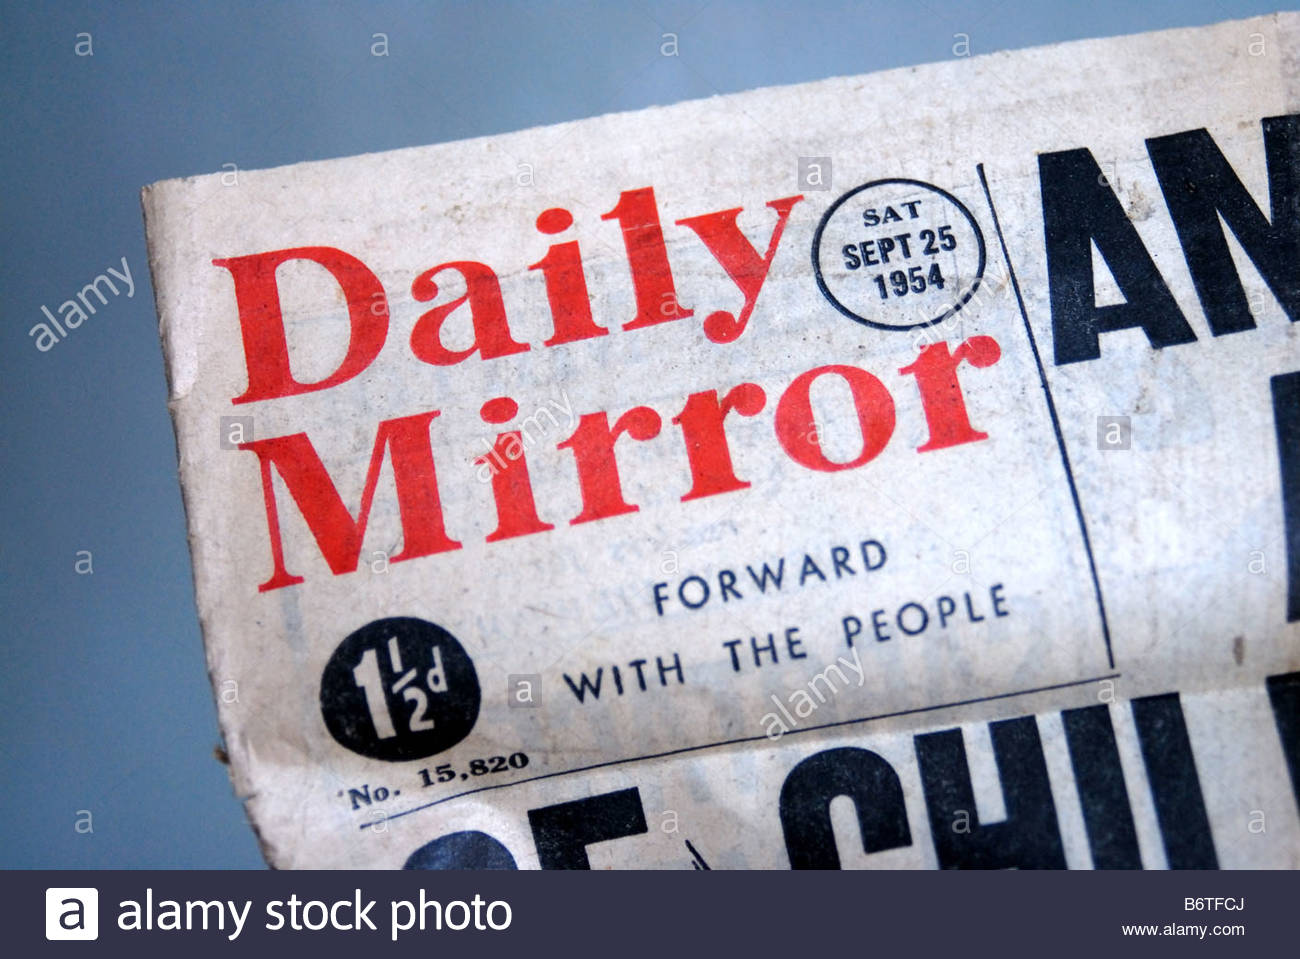 Daily mirror dating